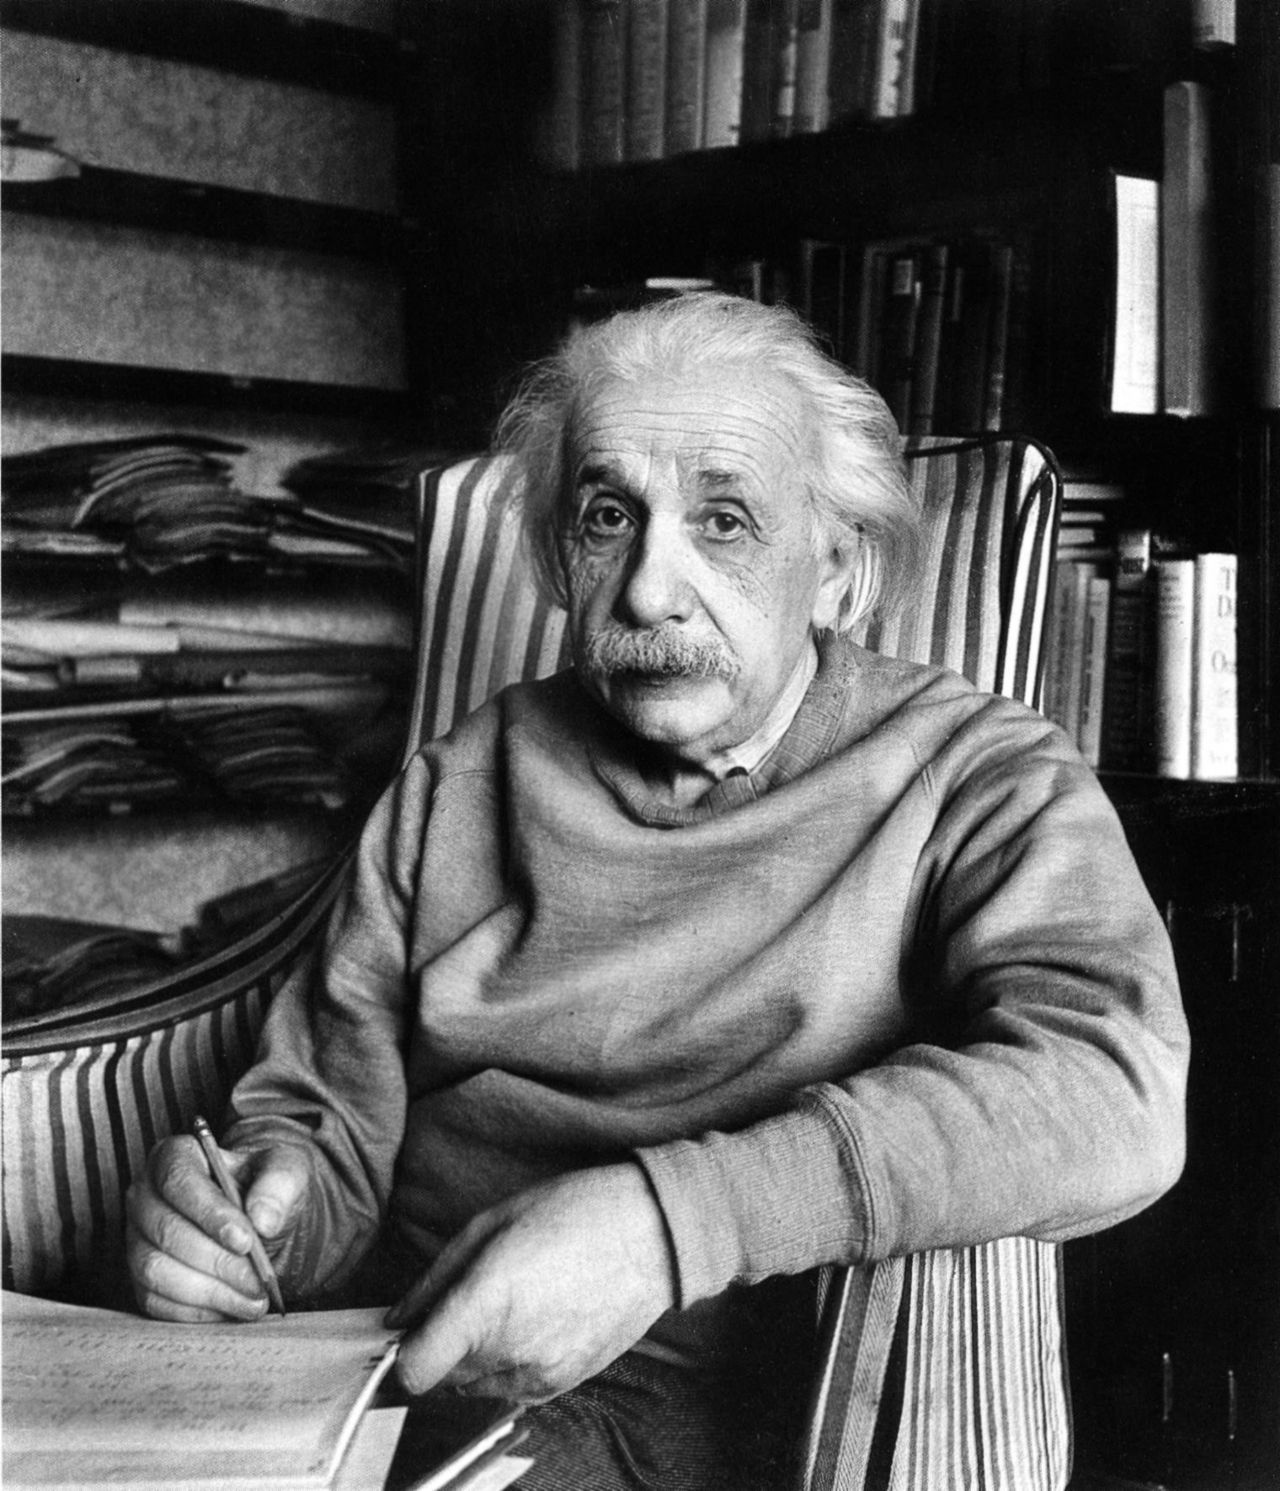 a biography of albert einstein german born american physicist and nobel prize winner Albert einstein (14 march 1879 - 18 april 1955) was a german-born theoretical physicist he was unable to personally accept the nobel prize for physics at the stockholm award ceremony in december 1922 einstein became an american citizen in 1940.